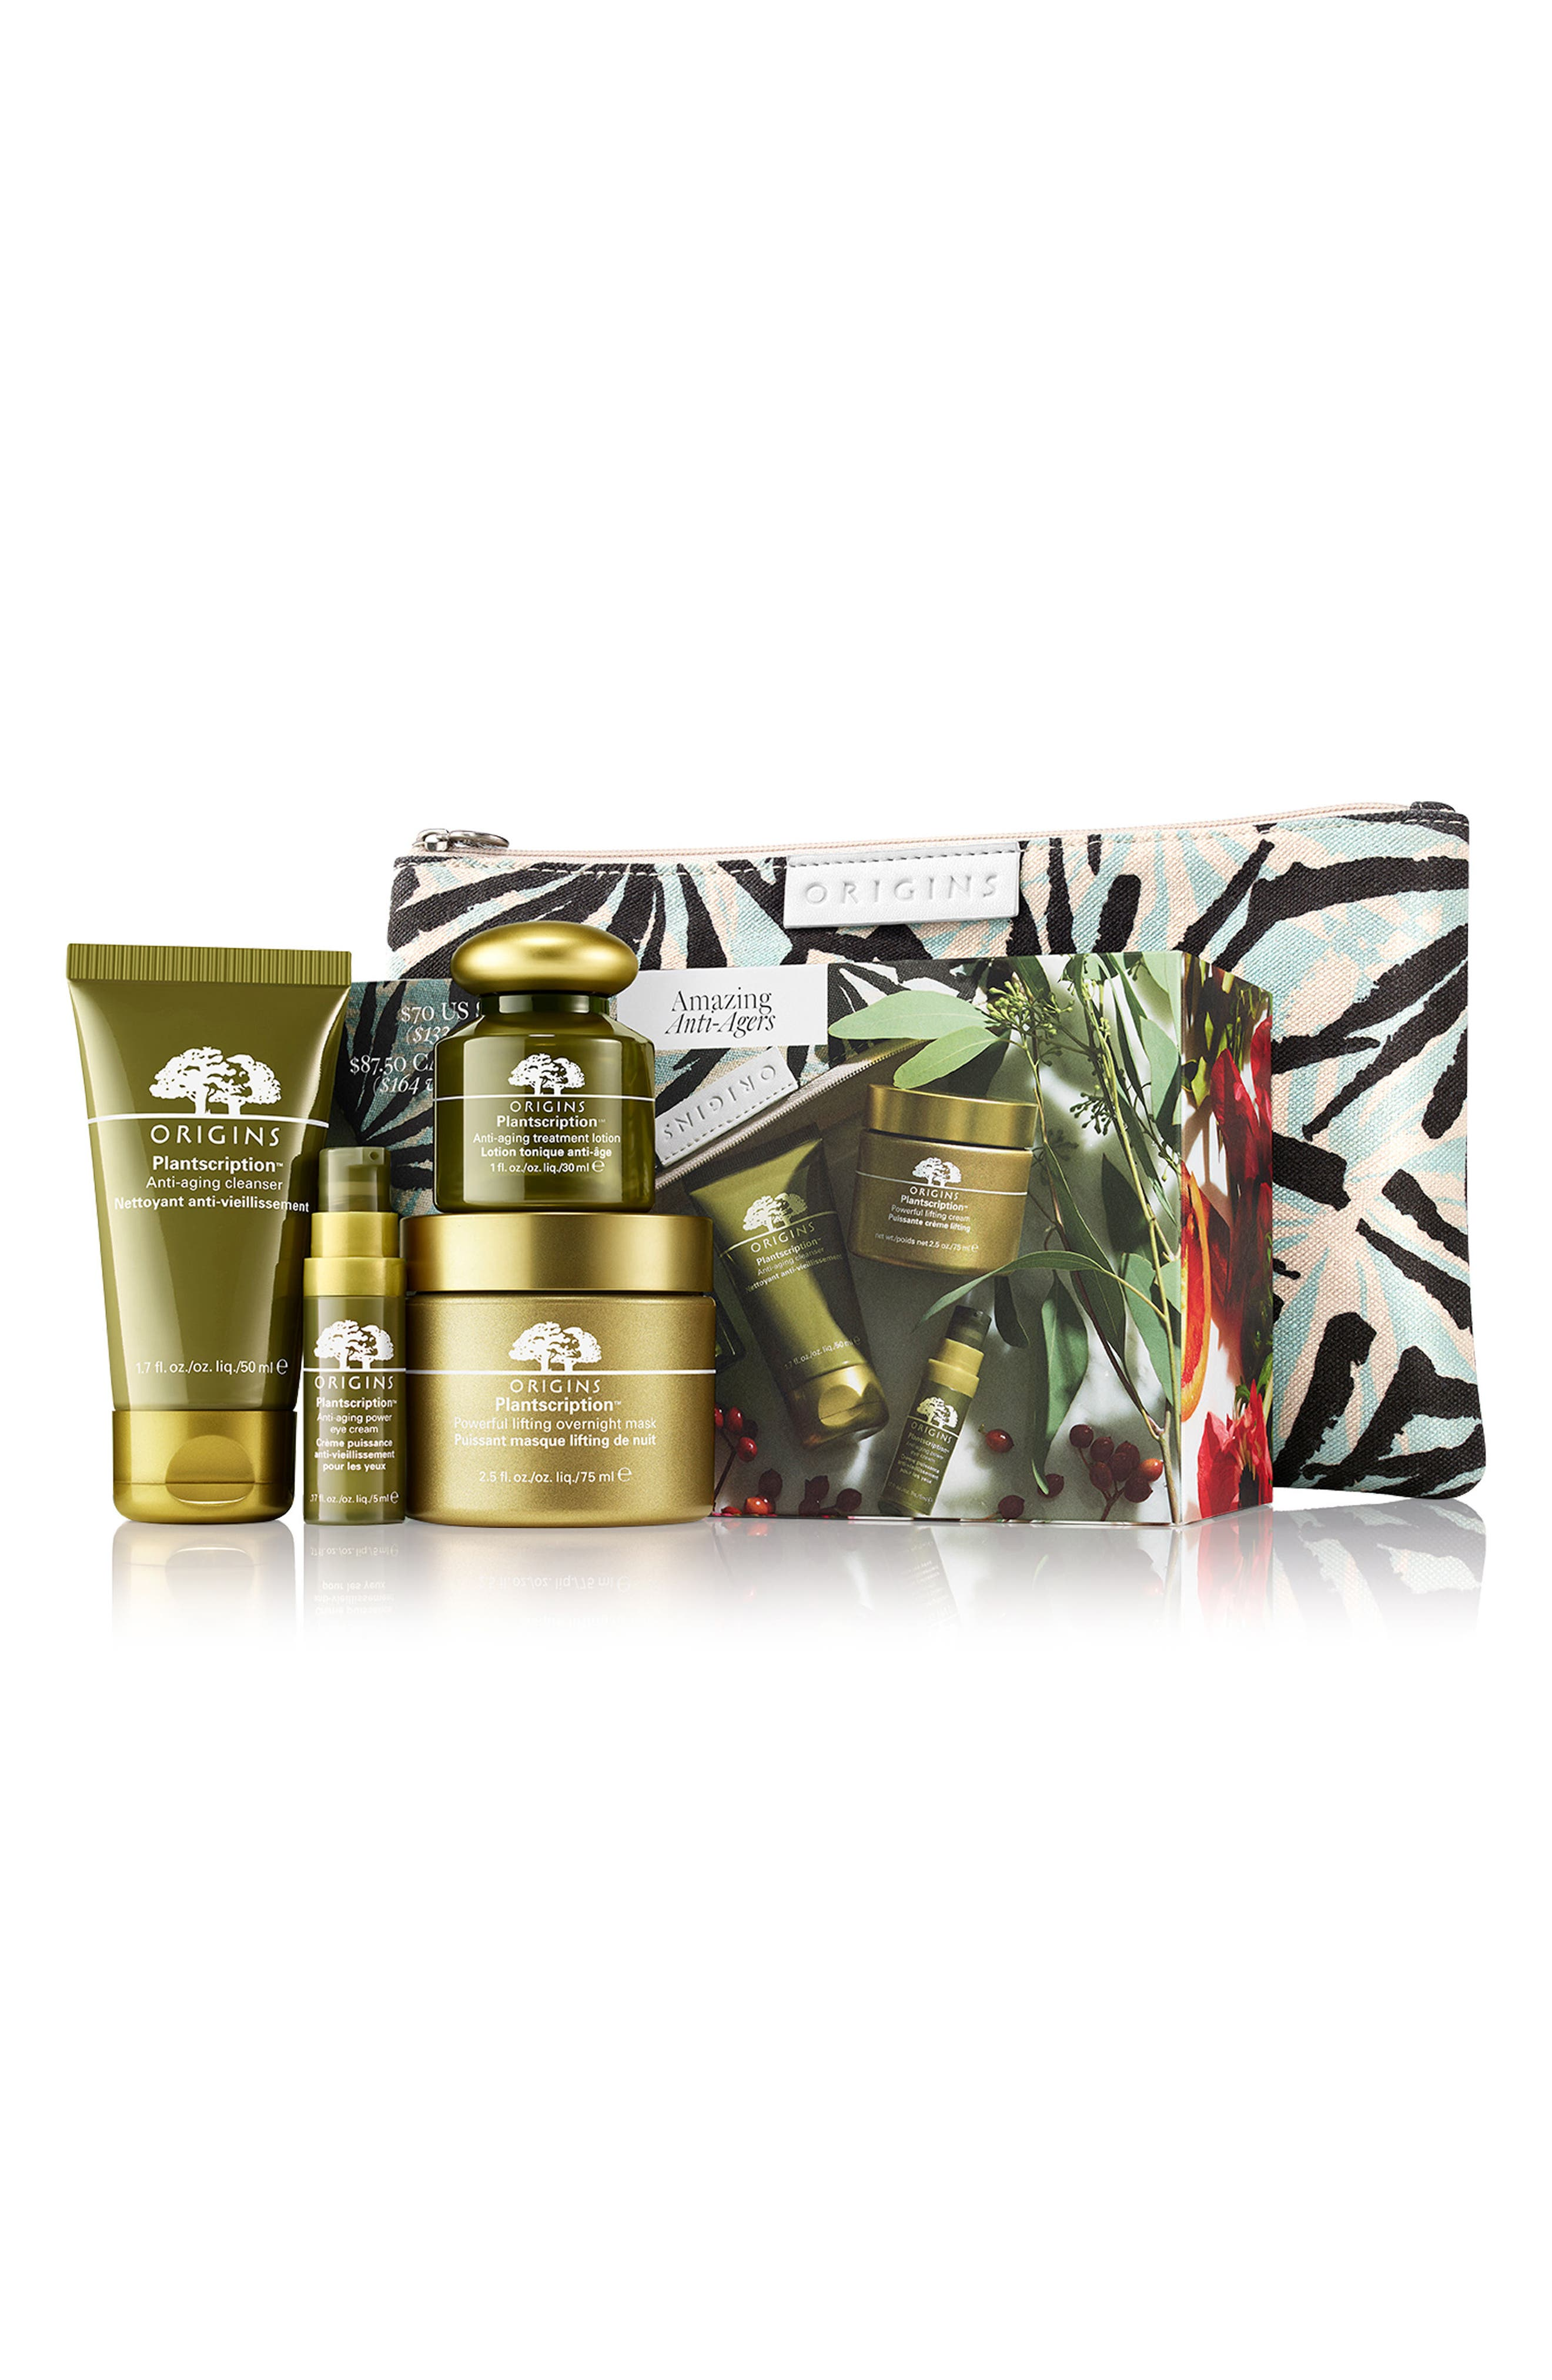 Origins Amazing Anti-Agers Set ($135 Value)